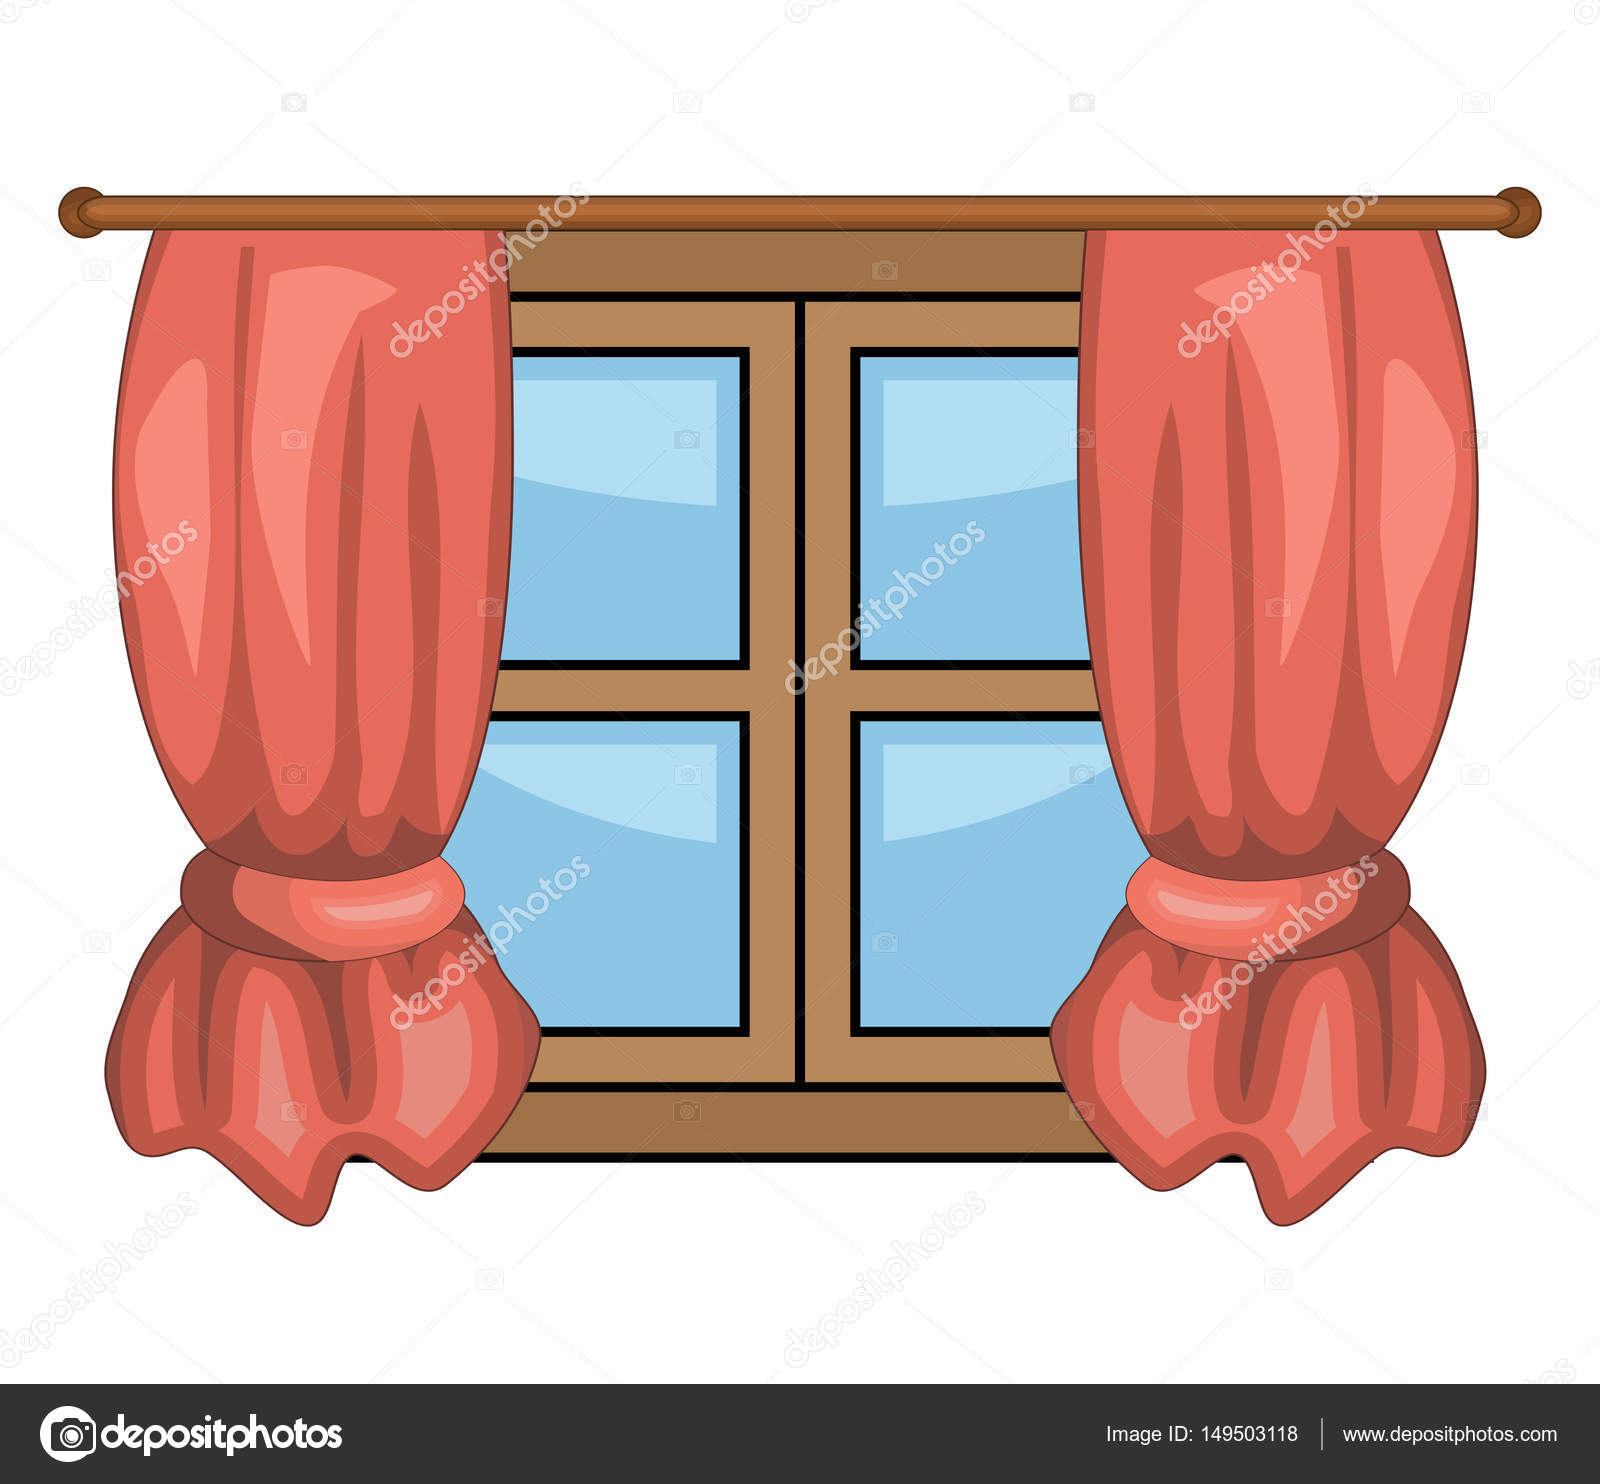 Cartoon Window With Curtains Vector Symbol Icon Design Beautiful Illustration Isolated On White Backgroun By Newelle